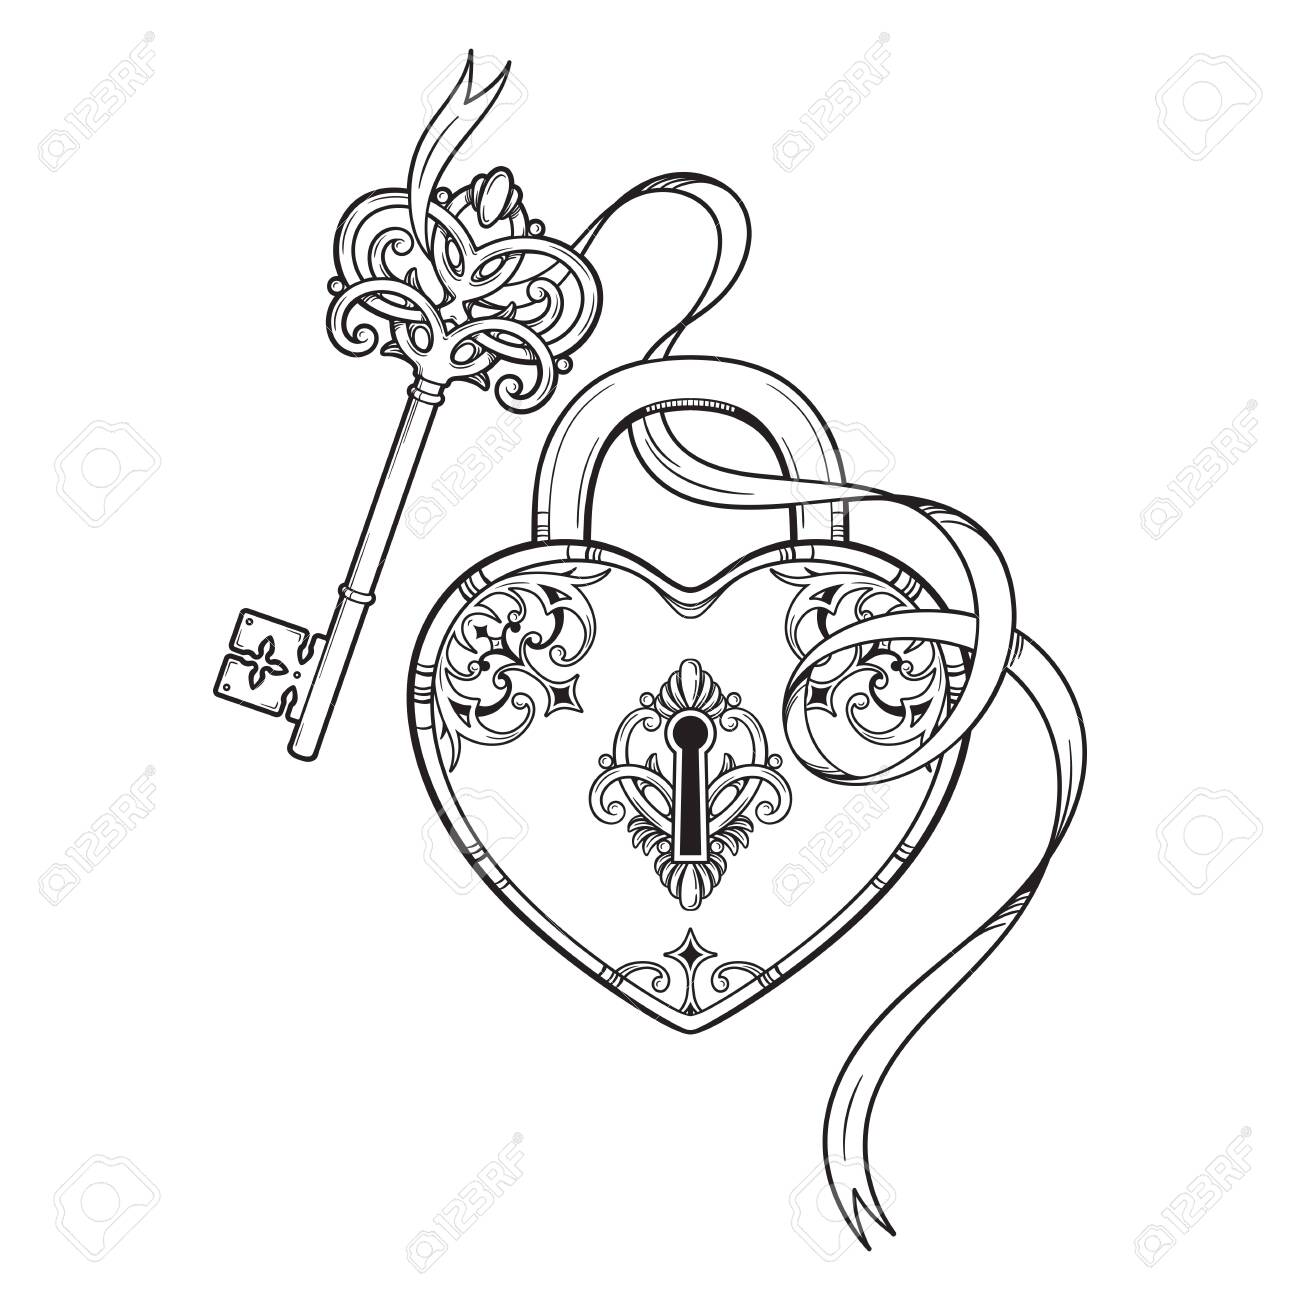 Key and heart shaped padlock in vintage style coloring book page for kids and adults hand drawn line art print or tattoo design vector illustration - 145546042